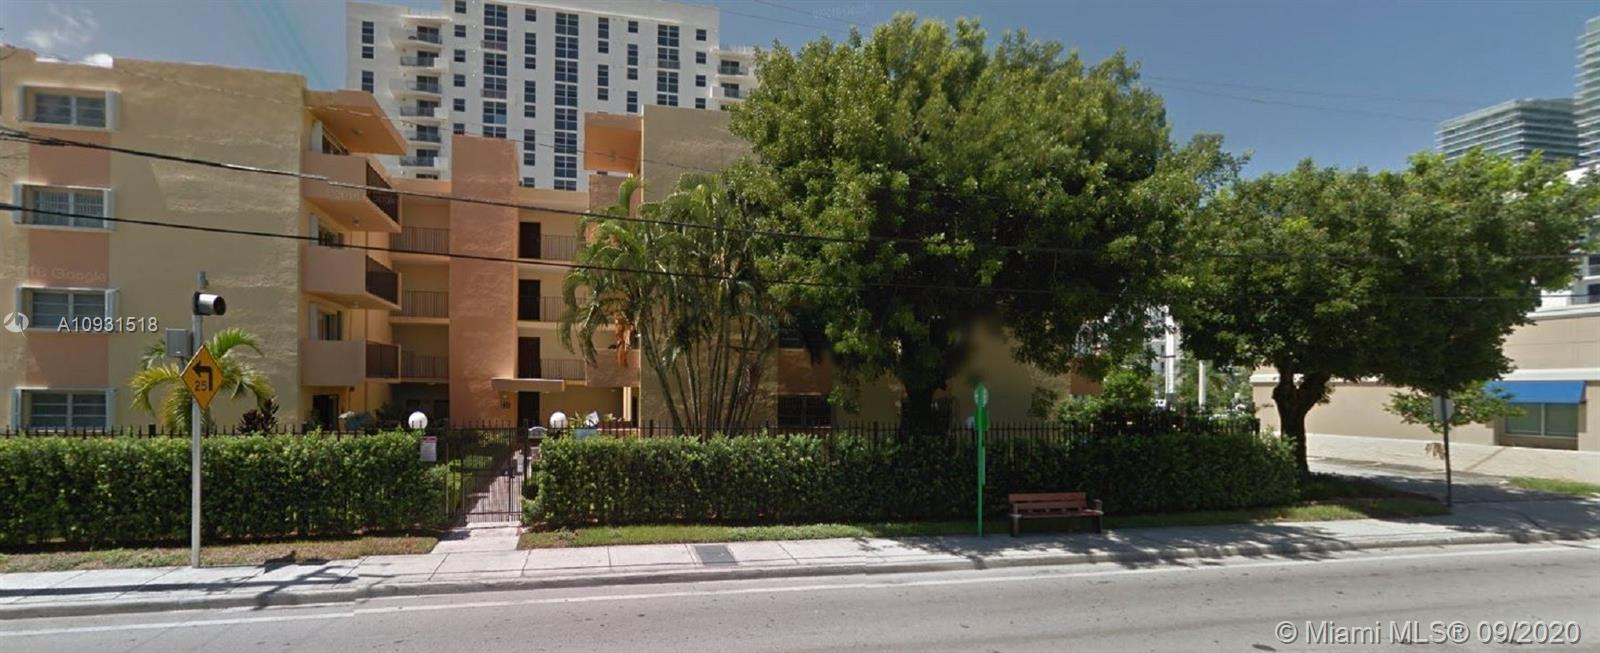 237 SW 13th St #407 For Sale A10931518, FL